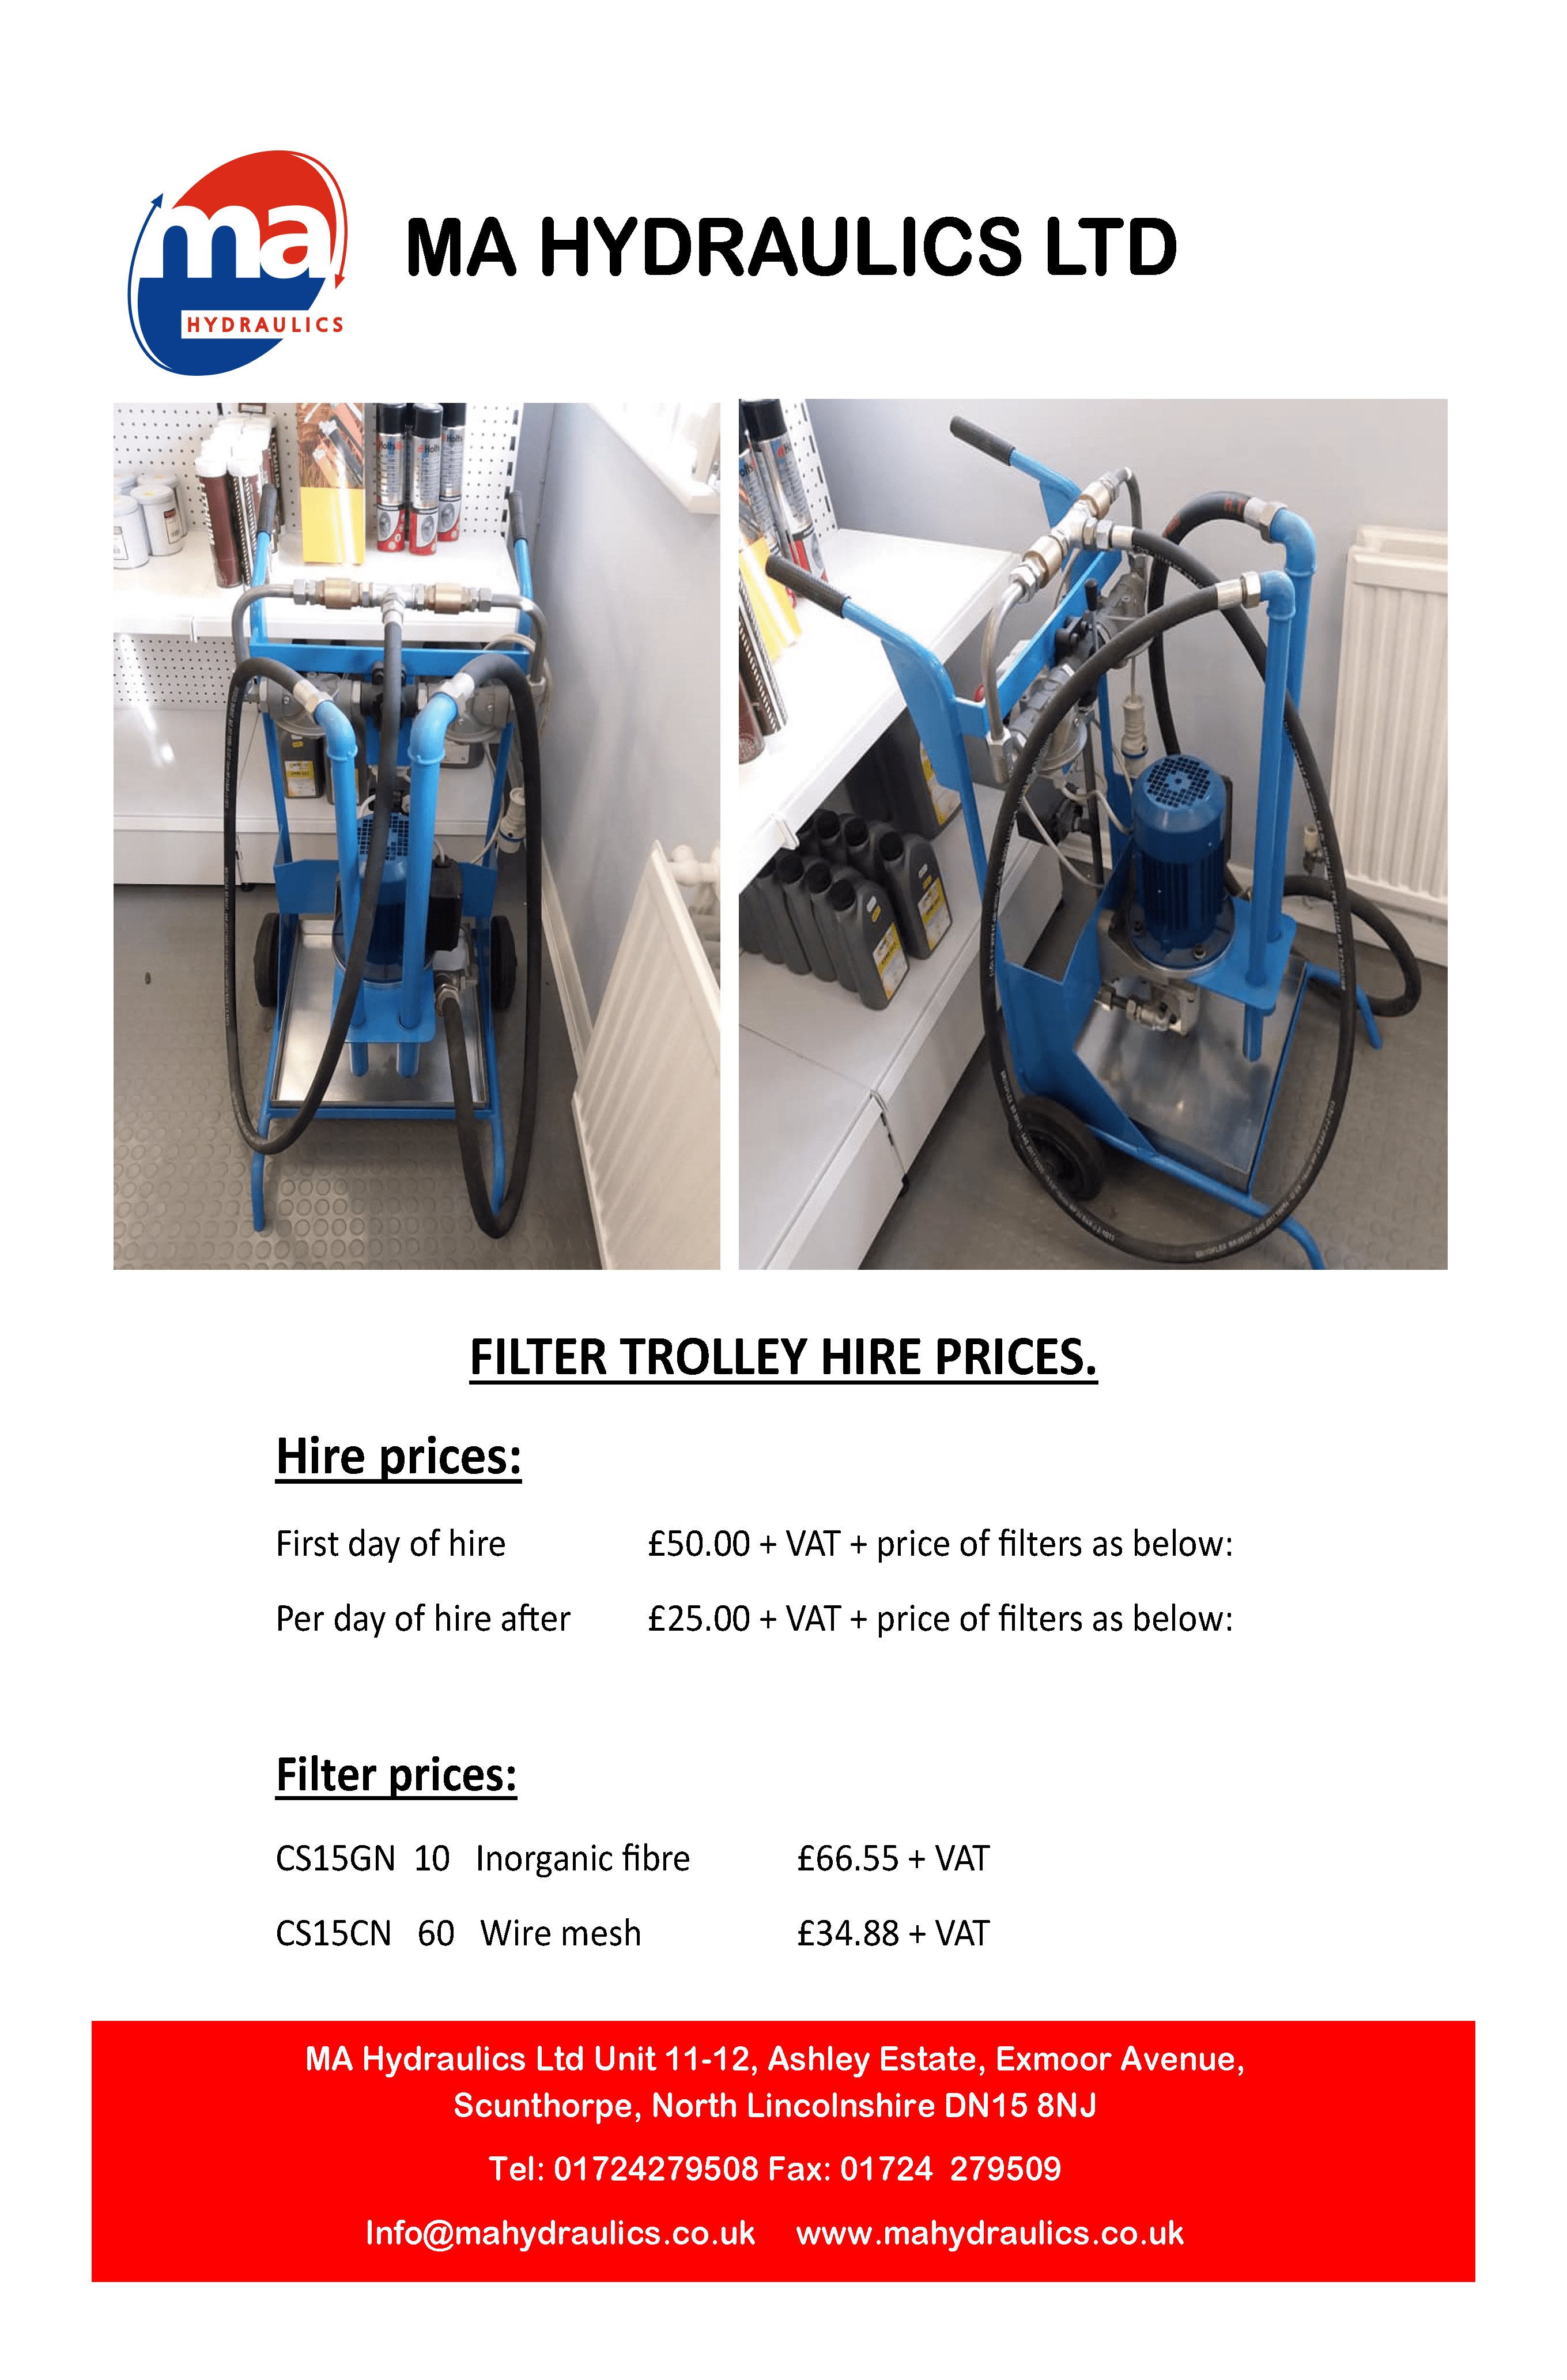 MA Hydraulics Ltd now have a filter trolley for hire